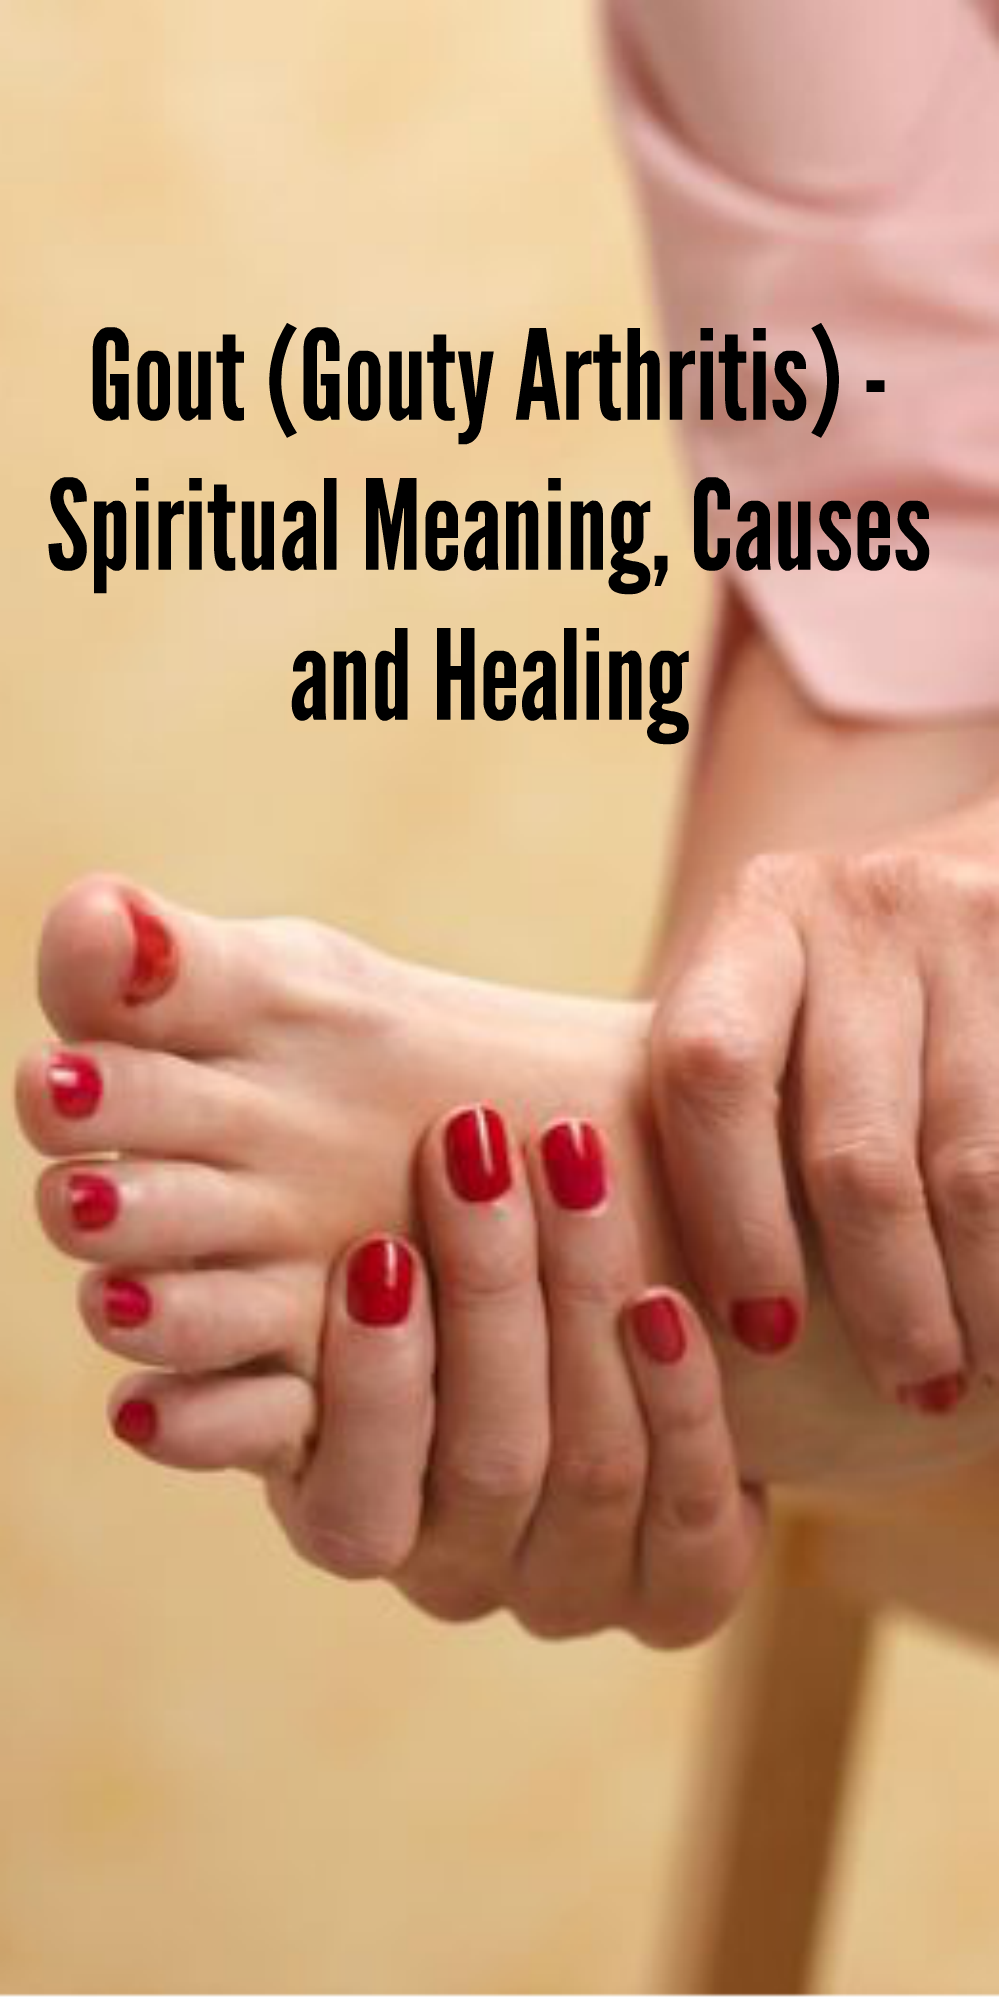 Gout (Gouty Arthritis) - Spiritual Meaning, Causes and